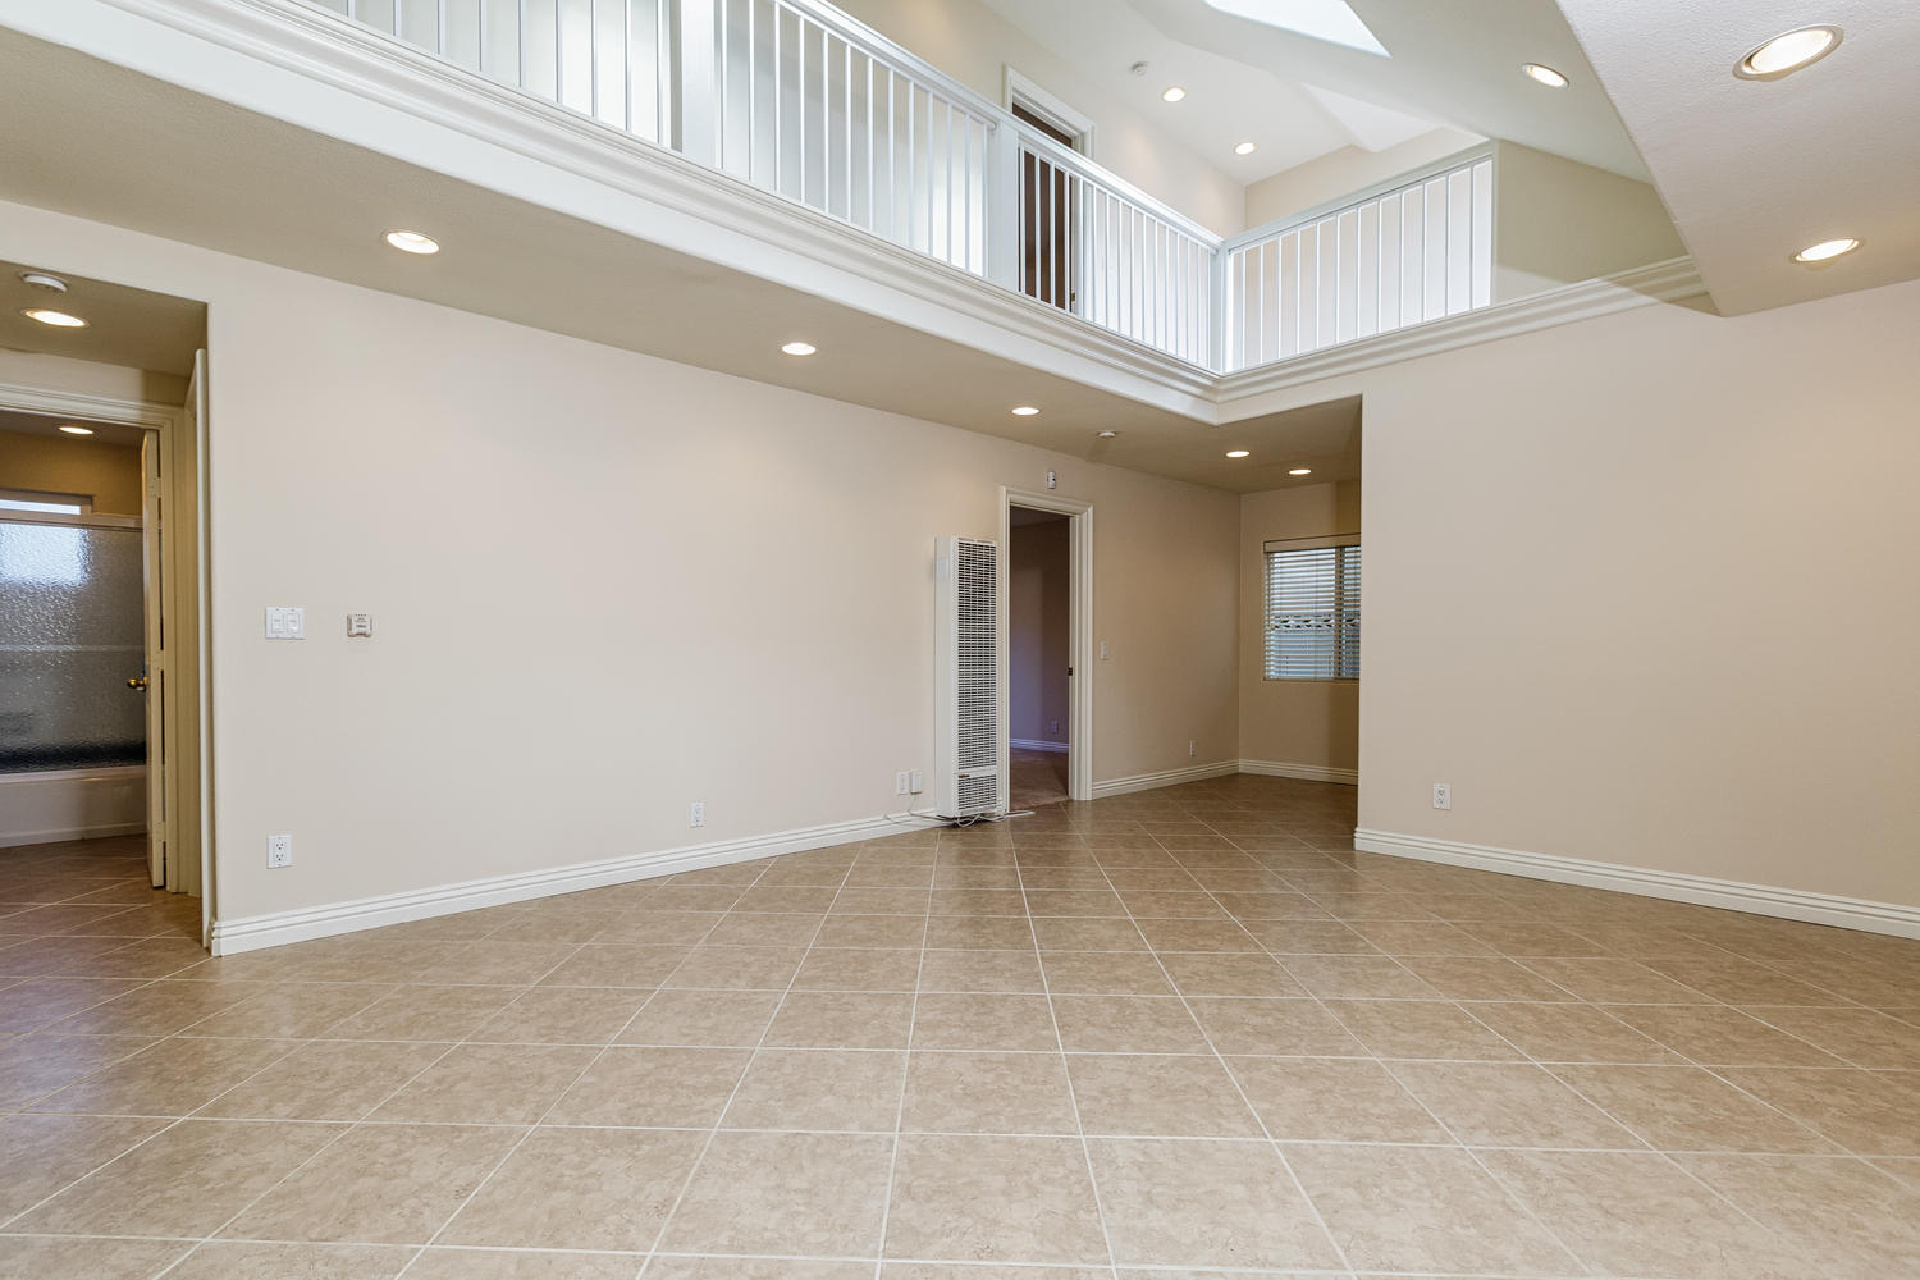 http://addressrealestate.com/media/images/blogs/38/2/b_4-1408-ocean-dr-oxnard-ca-93035-mls-size-002-10-living-area-1500x1000-72dpi.jpg